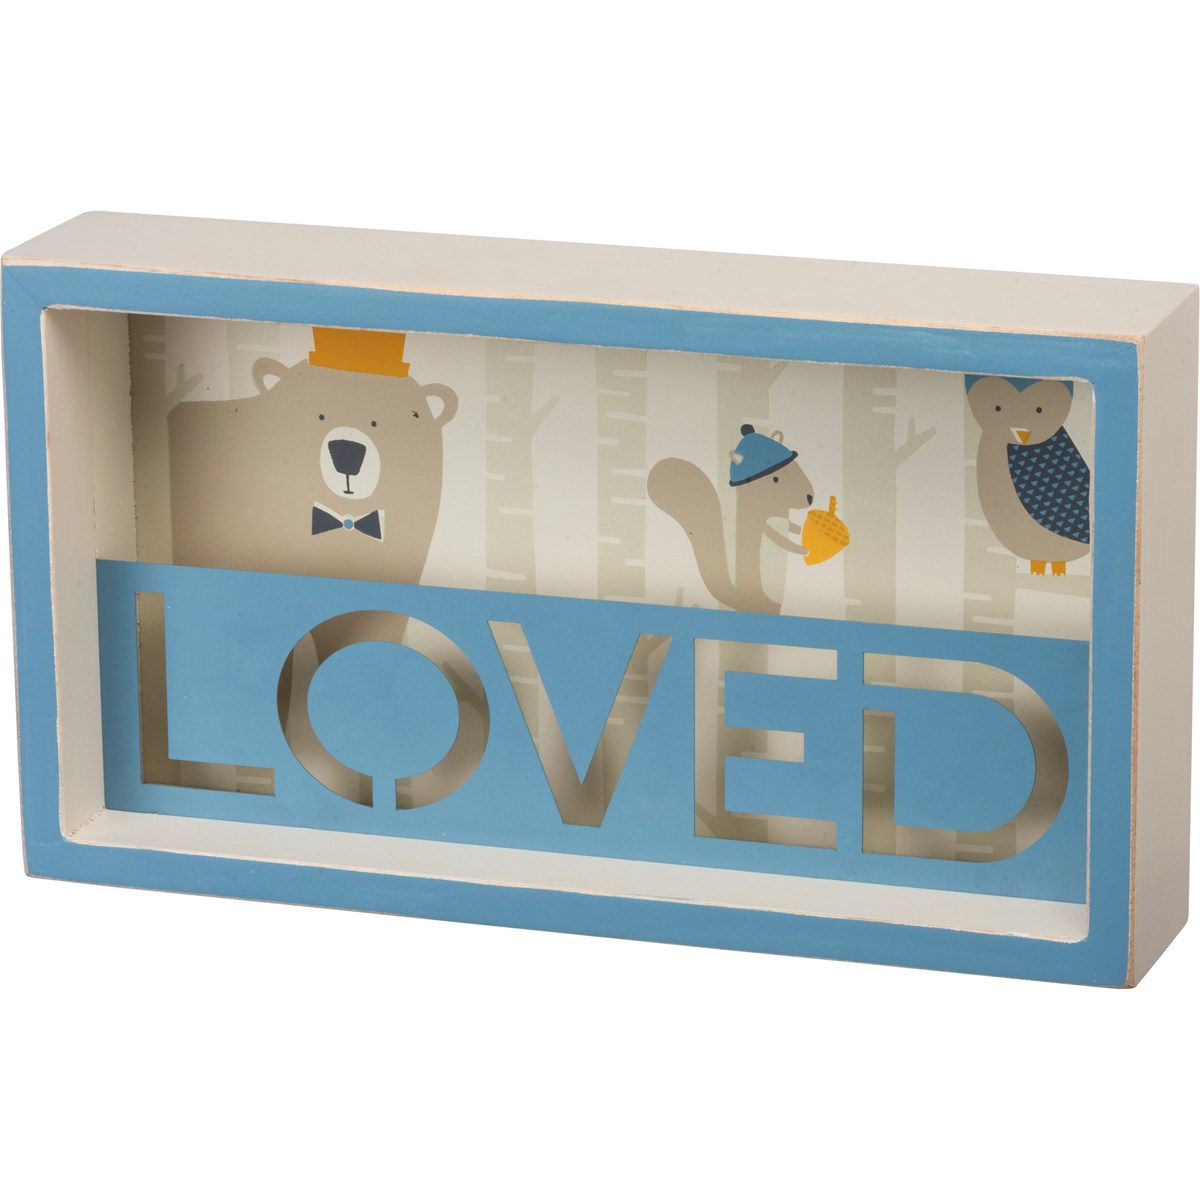 "Reverse Box Sign - Loved - 9"" x 5"" x 1.75"" - Wood, Metal"